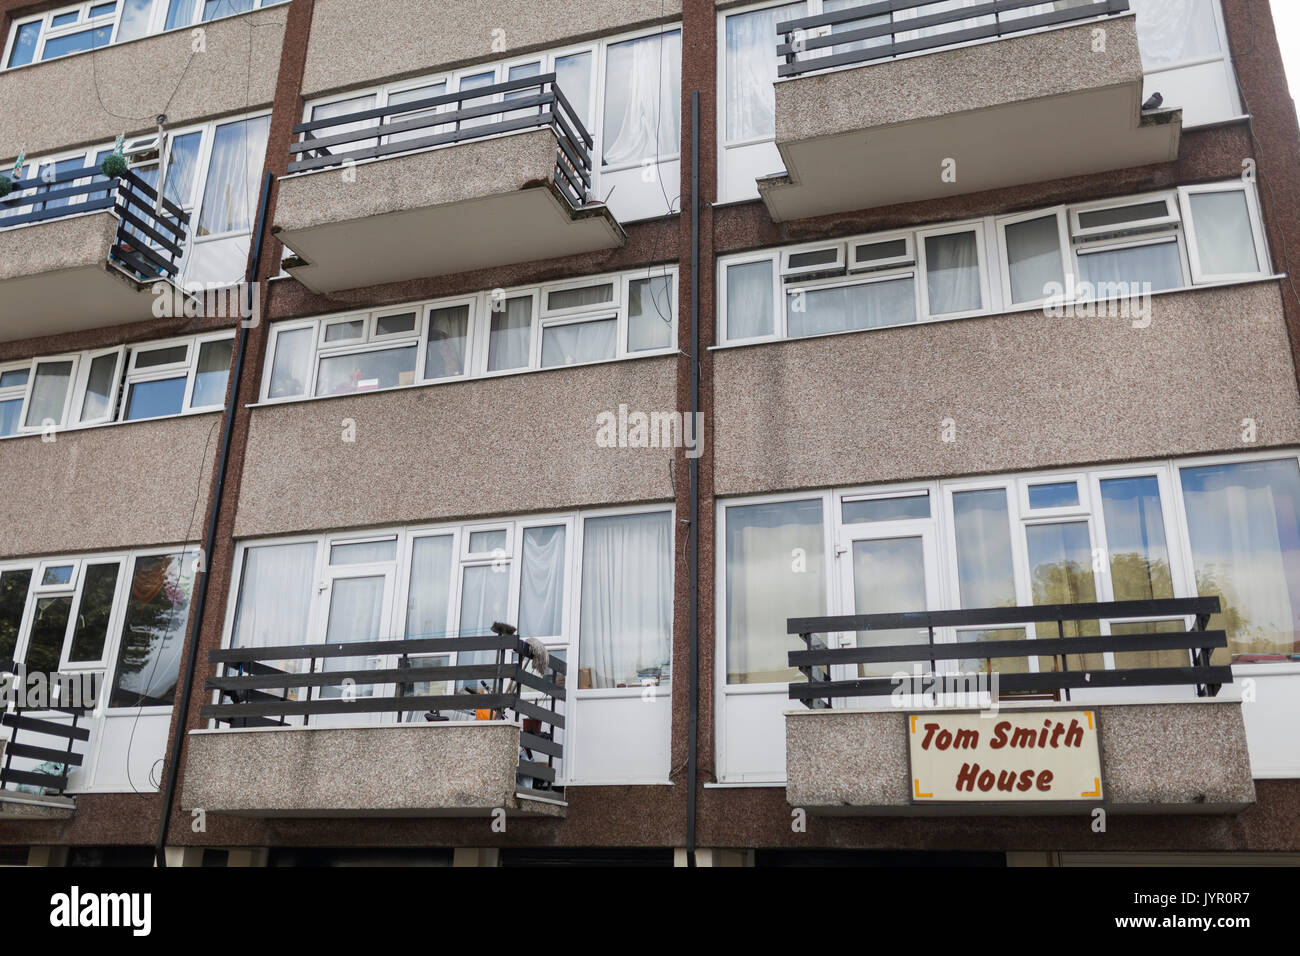 View of exterior of Tom Smith House in Walthamstow, North-East London. - Stock Image